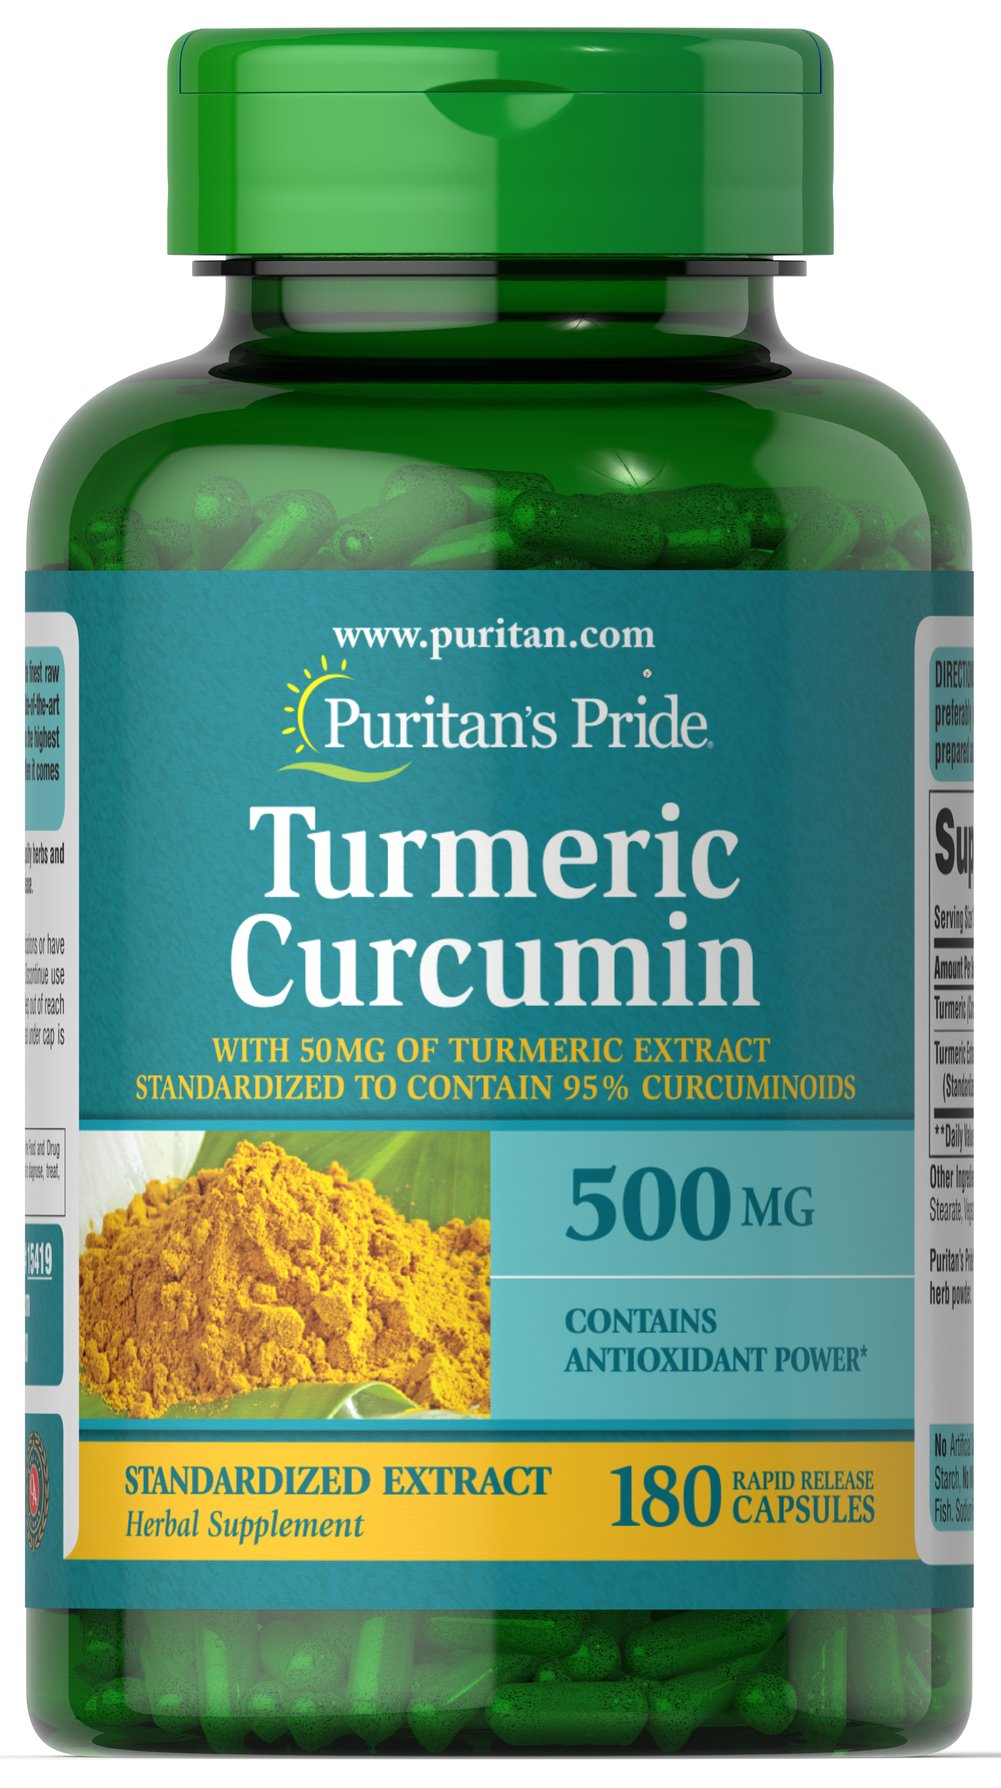 Turmeric Curcumin 500 mg Thumbnail Alternate Bottle View